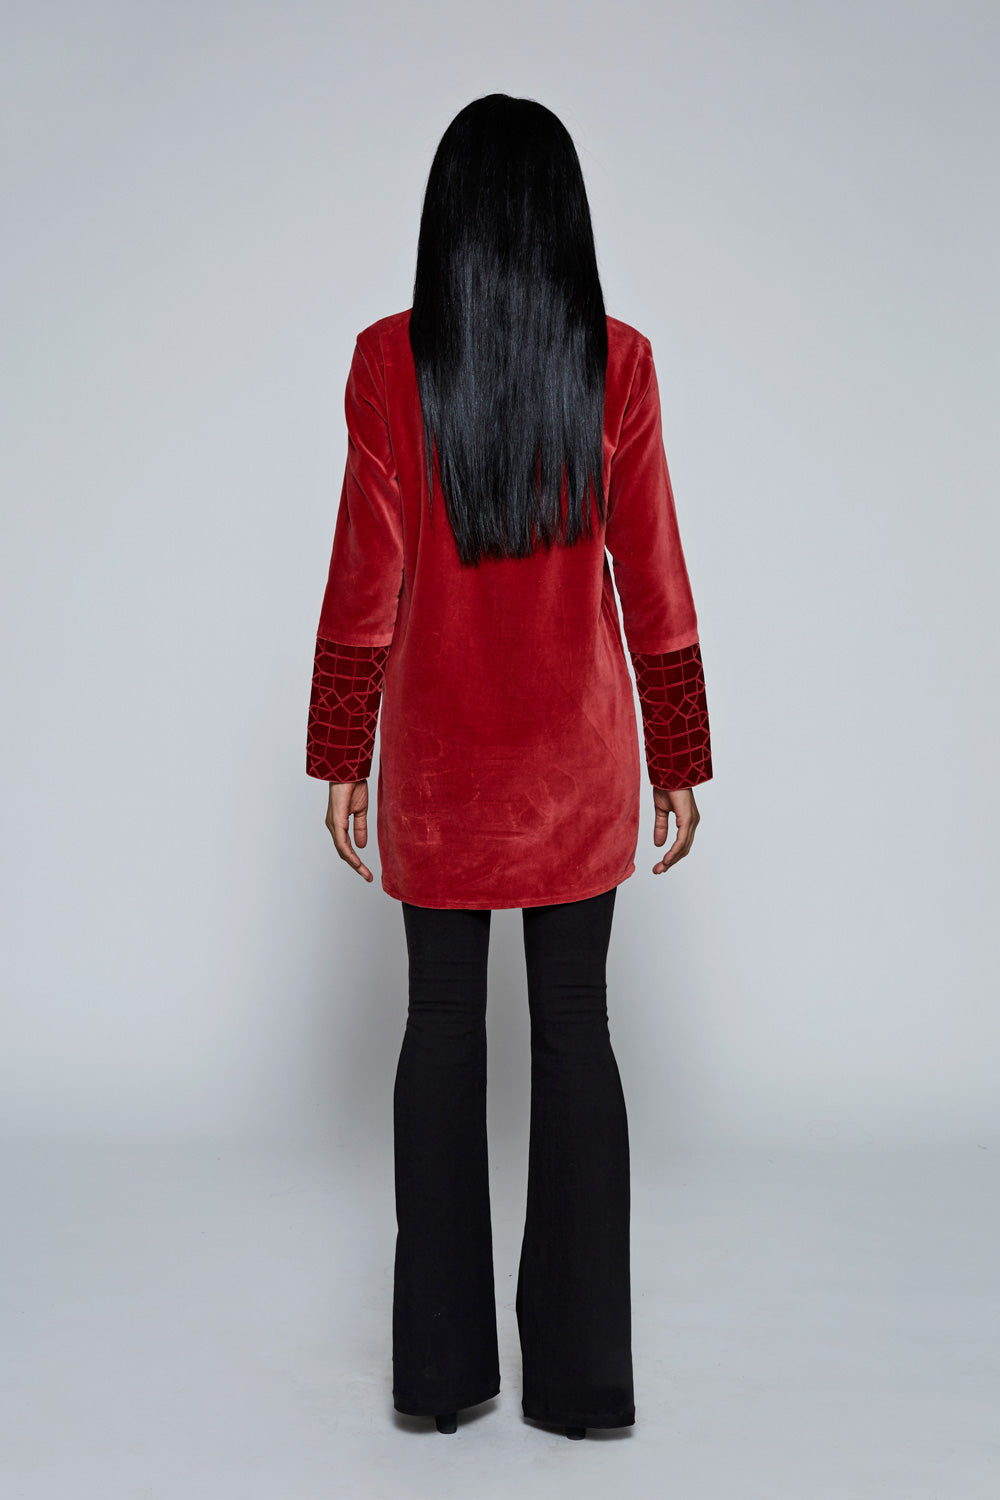 Imaima Adira Jumper Red